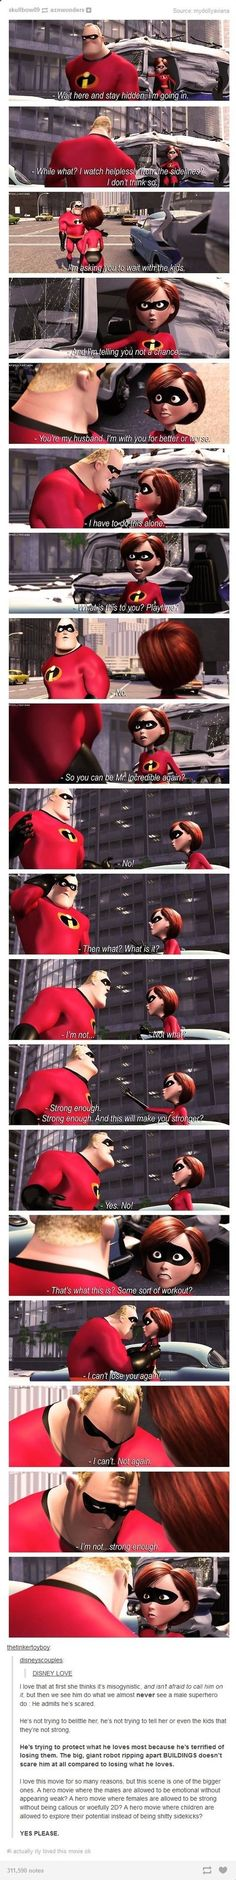 Disney Love in the Incredibles. <-----*sniffles, clears throat* oh sorry, I think there's something in my eye. I'm just gonna go stand in the corner for a minute......